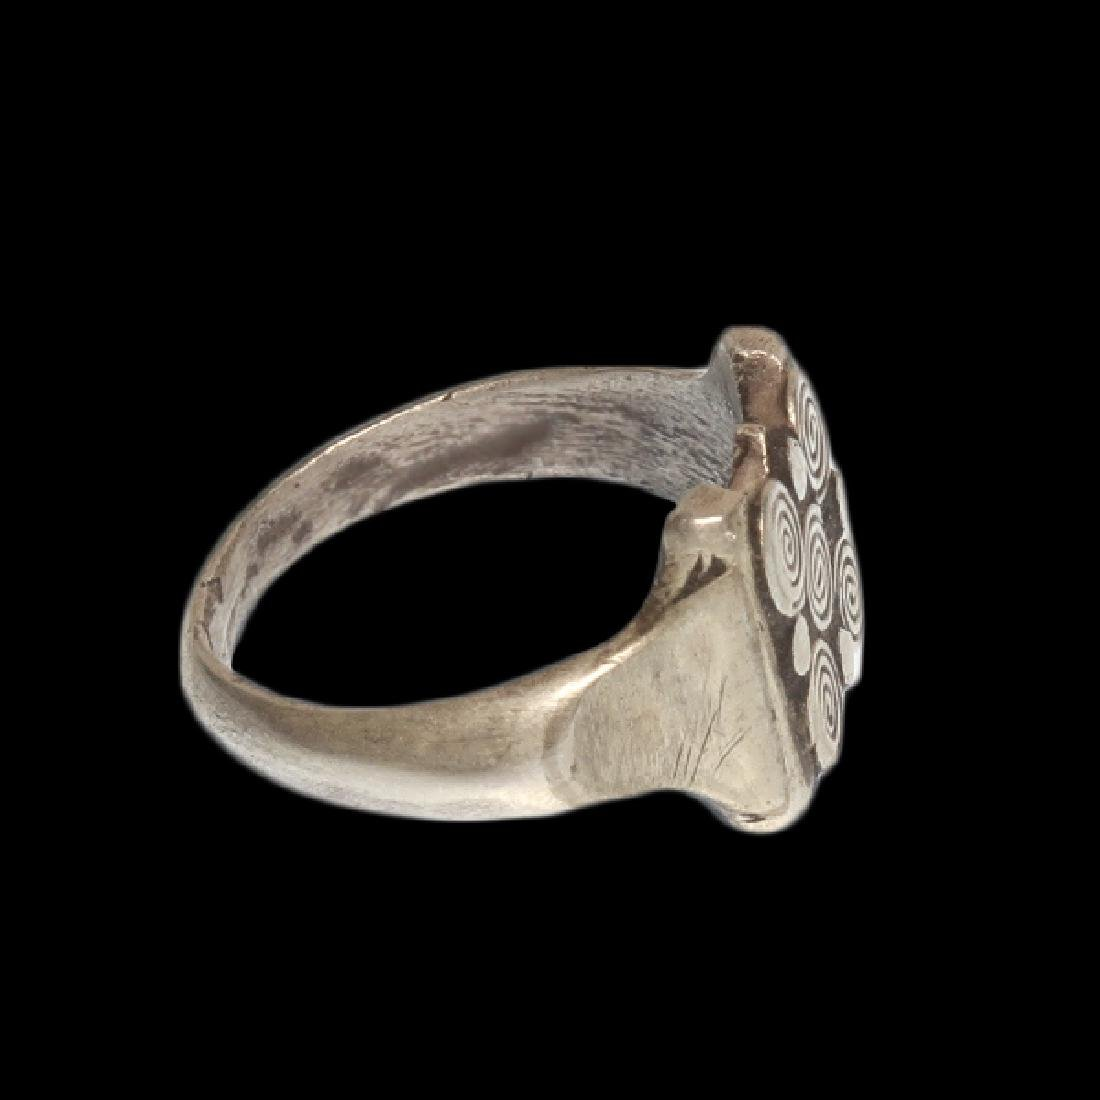 Viking Silver Ring with Spiral Patterns, c. 10th - 5